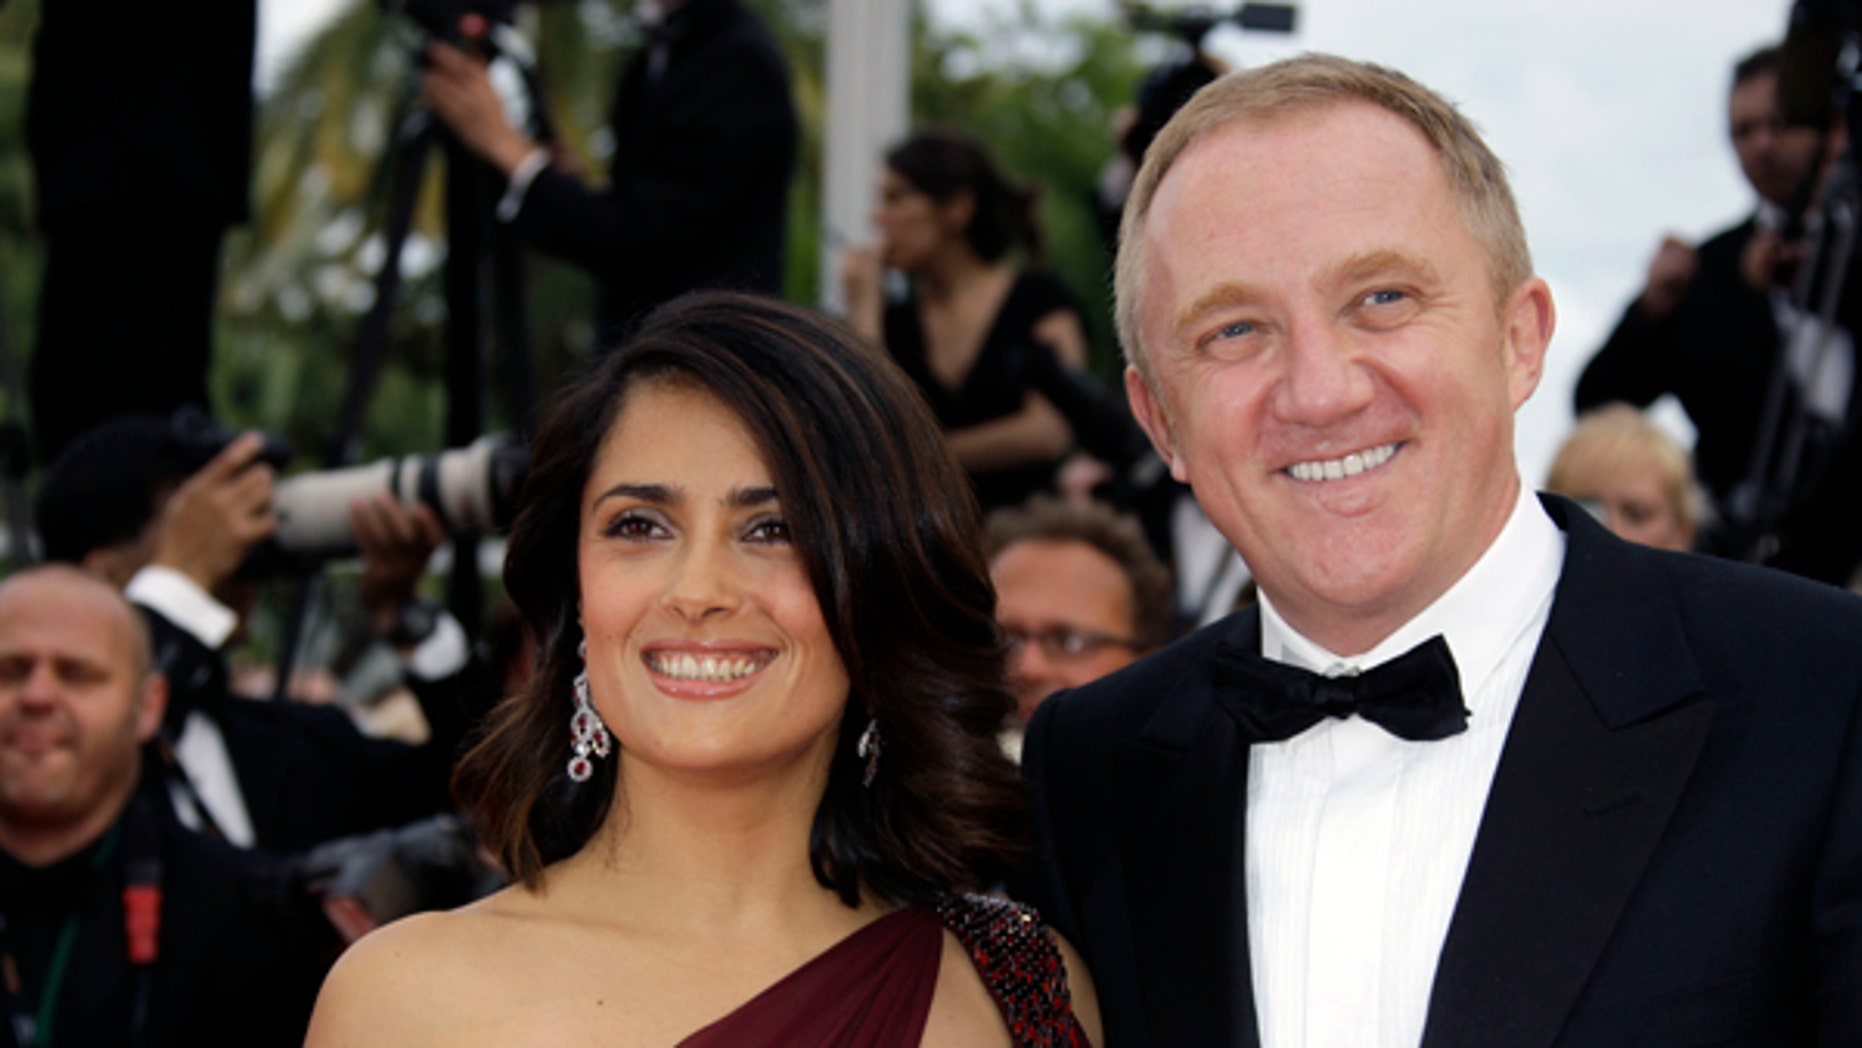 """Actress Salma Hayek and husband François-Henri Pinault arrive at the premiere for the film """"Robin Hood"""", at the 63rd international film festival, in Cannes, southern France, Wednesday, May 12, 2010. (AP Photo/Joel Ryan)"""